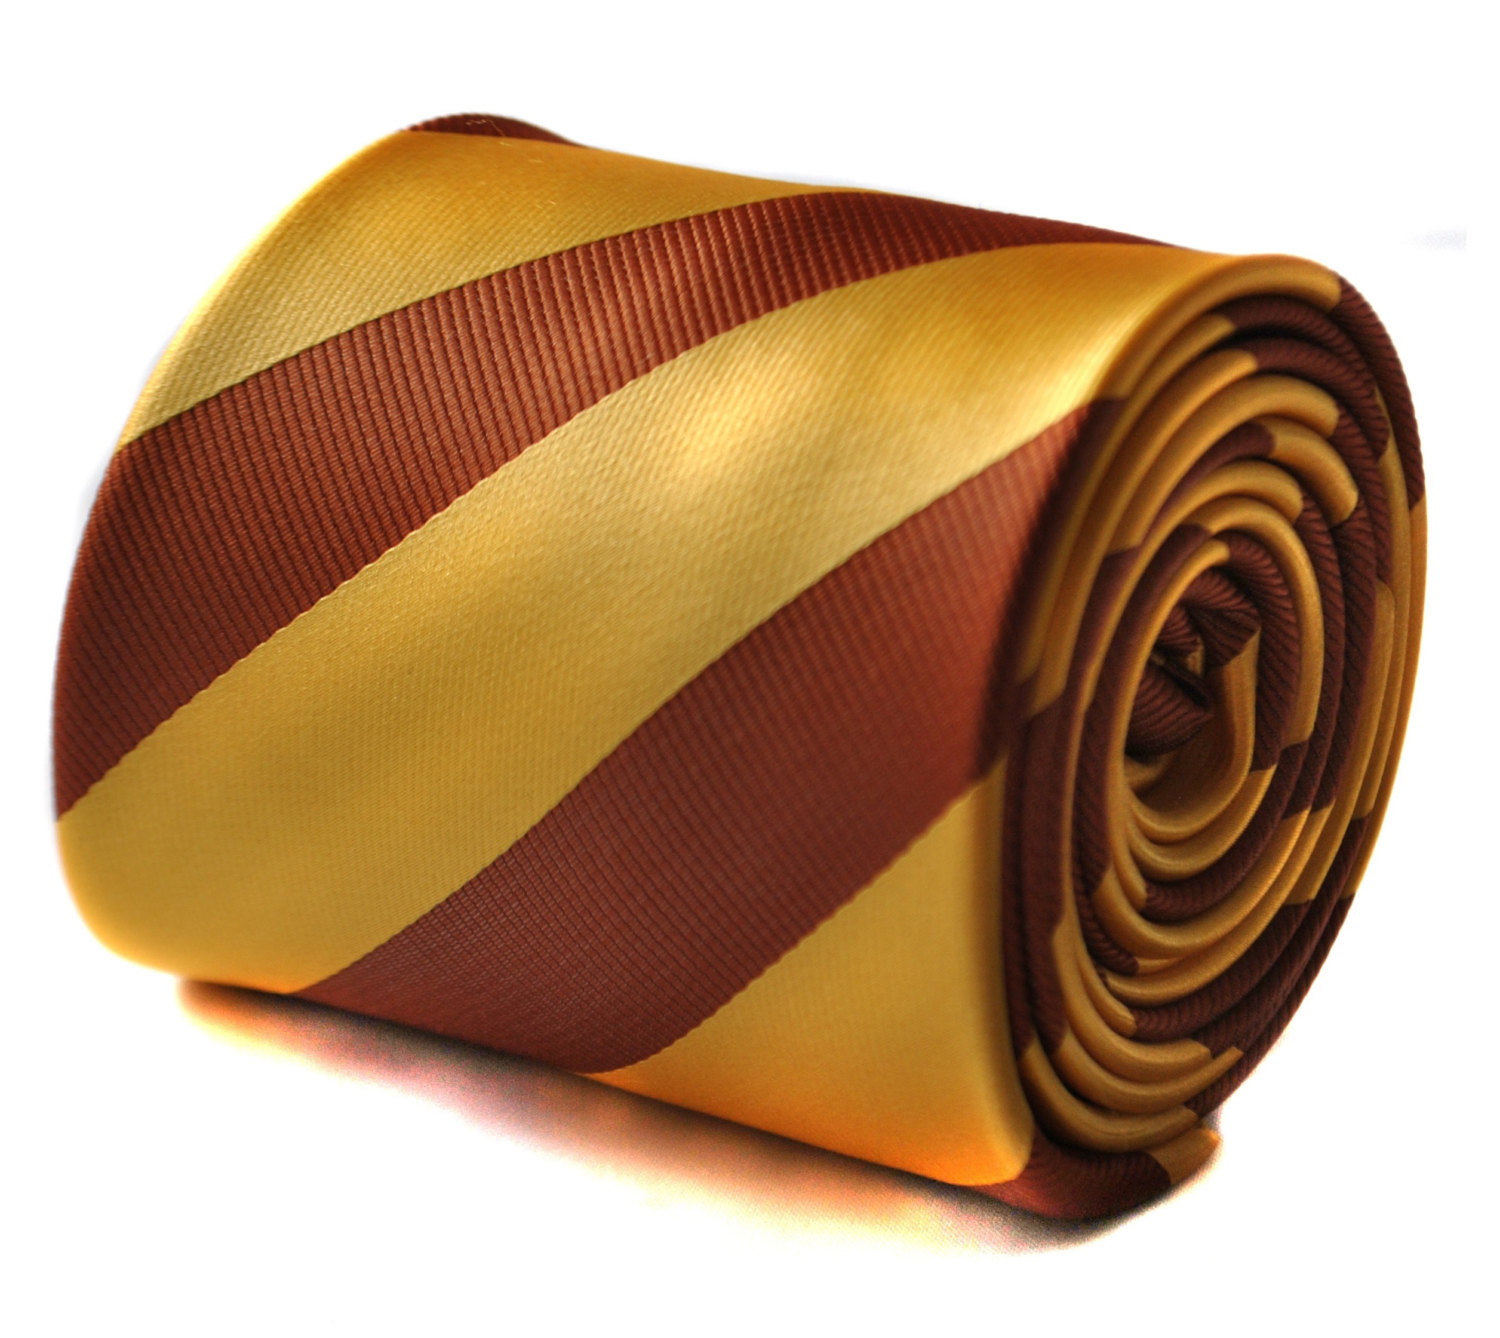 Yellow gold and chocolate brown barber striped tie with floral design to the rea